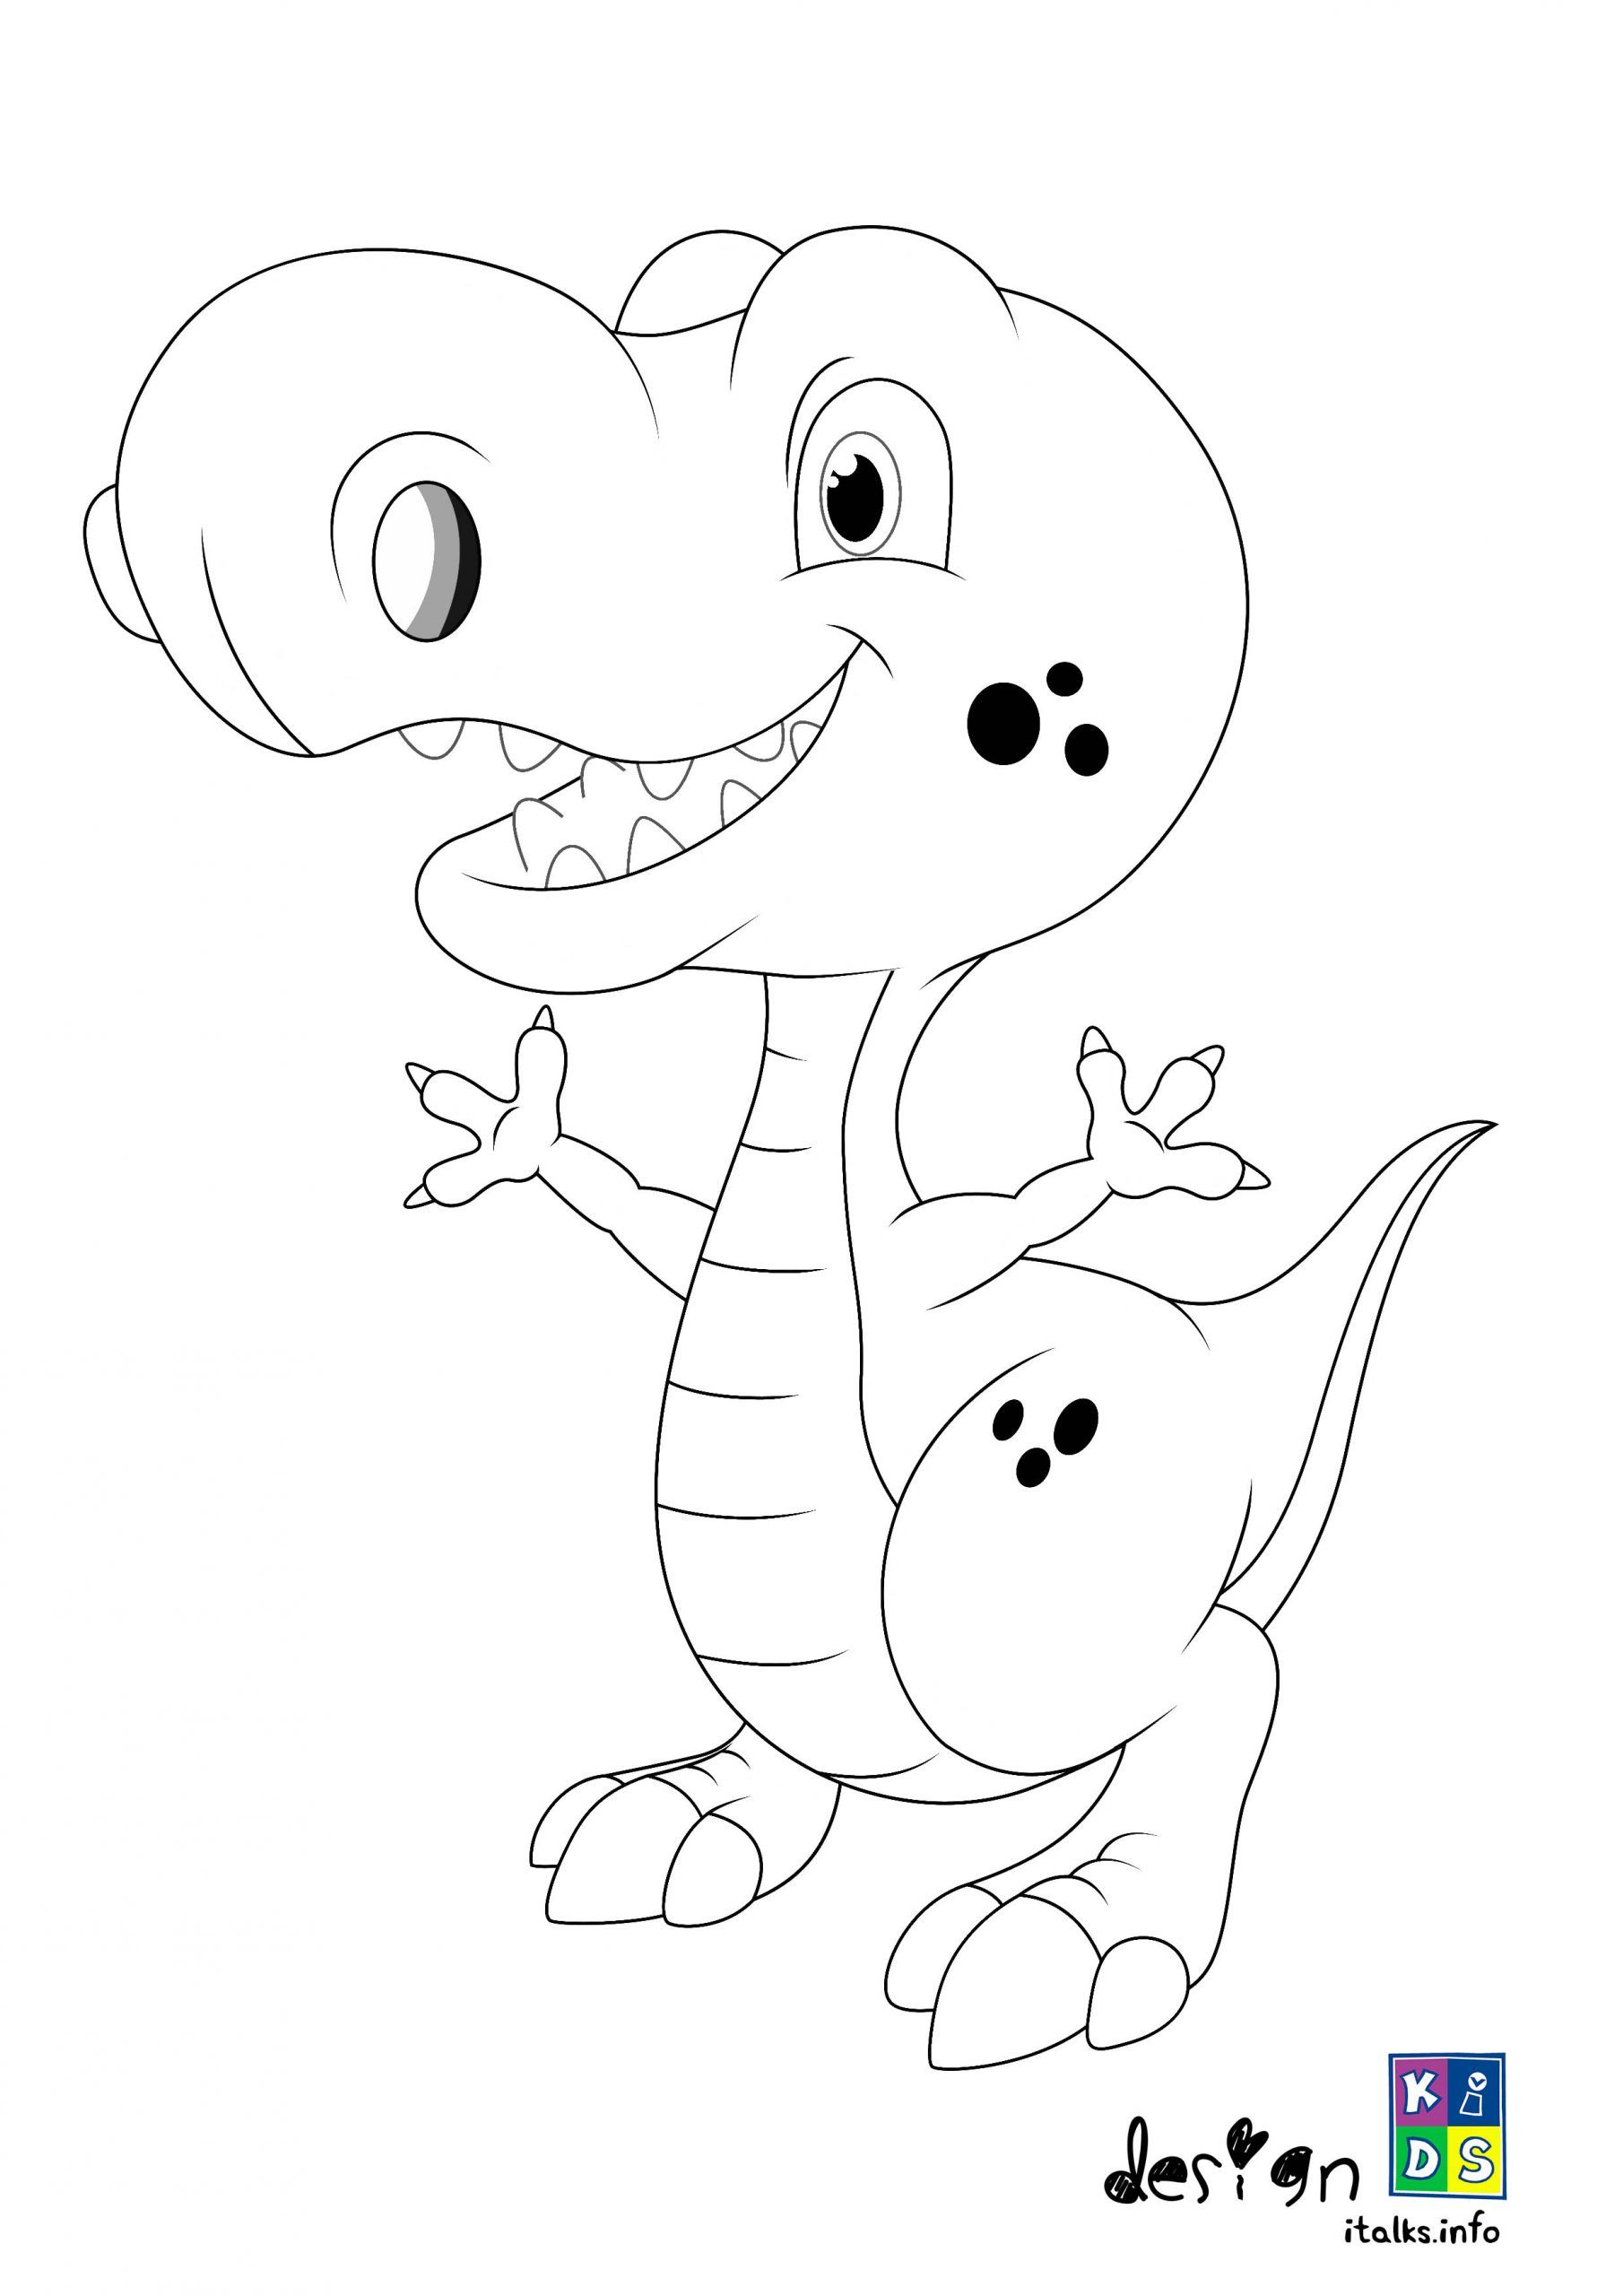 Printable Baby Trex Coloring Page For Kids In 2020 Coloring Pages Printables Kids Coloring Pages For Kids